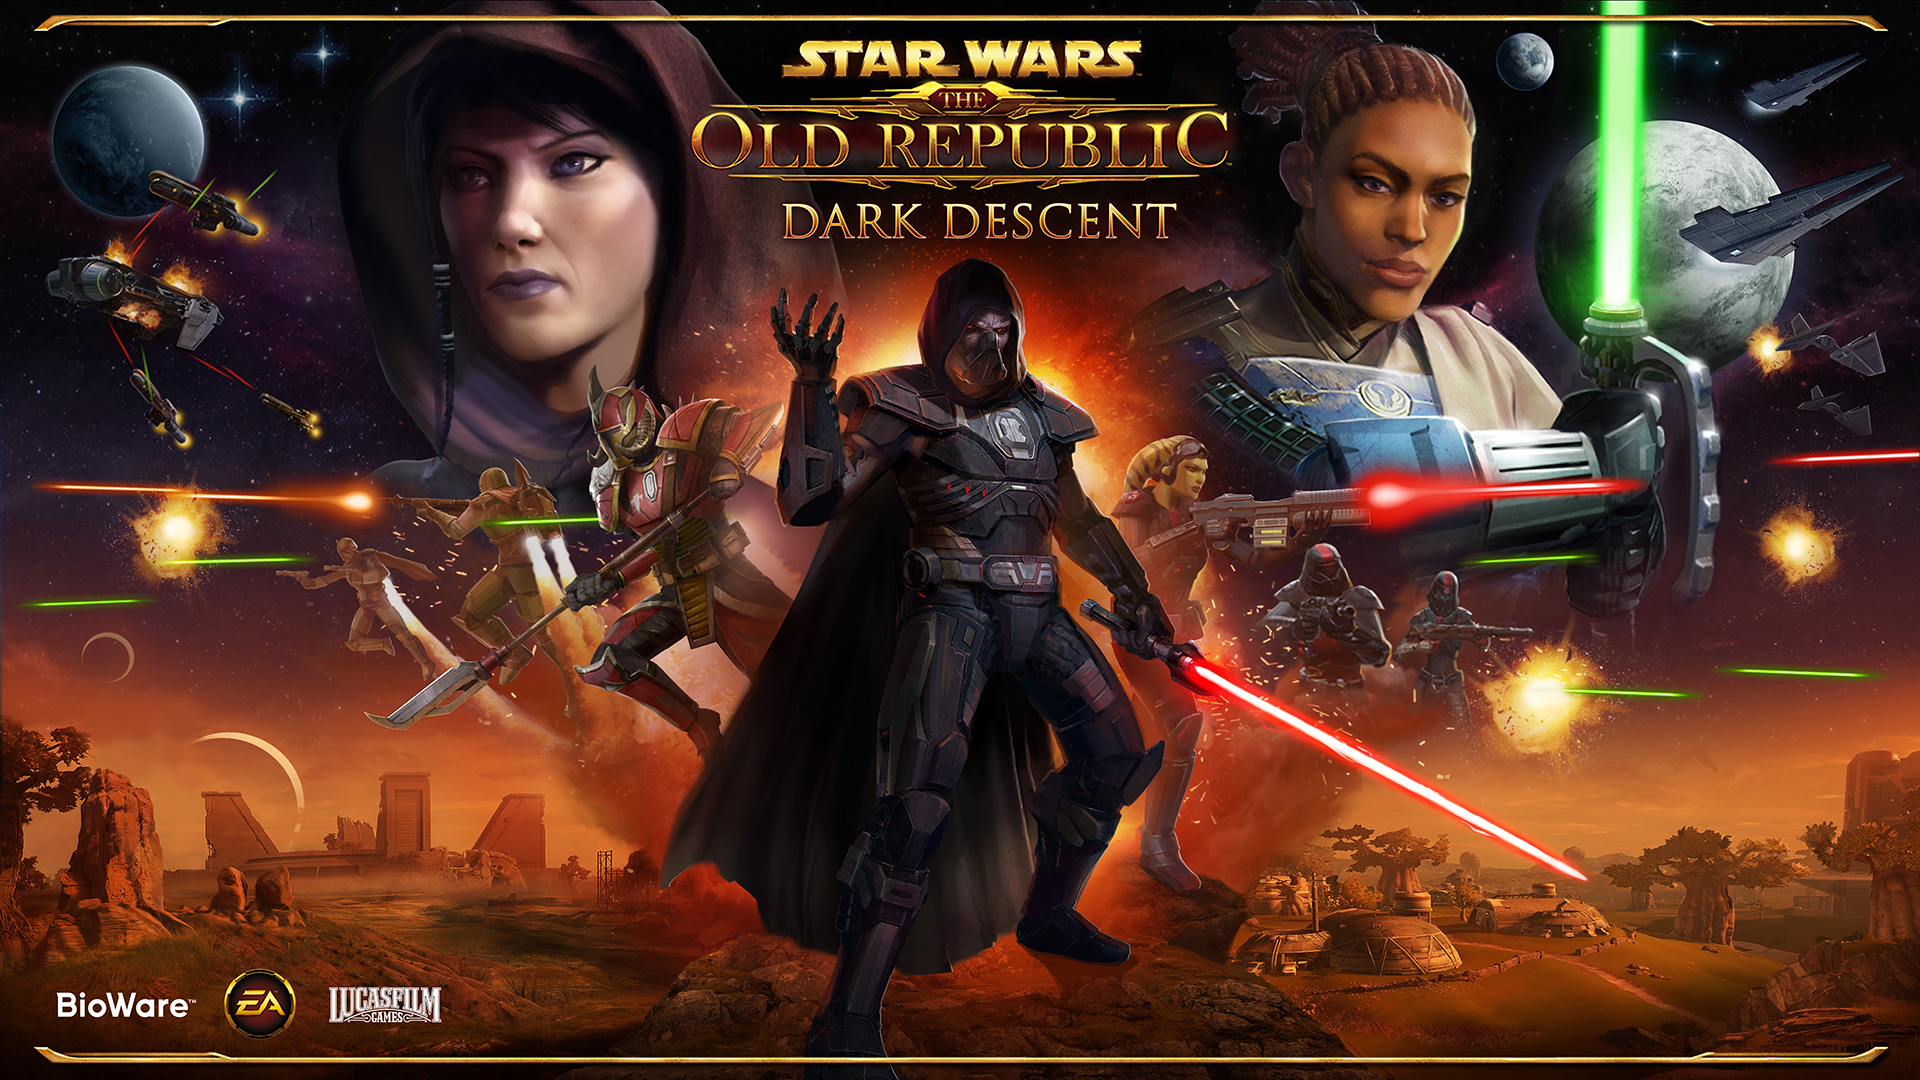 SWTOR Game Update 6.3